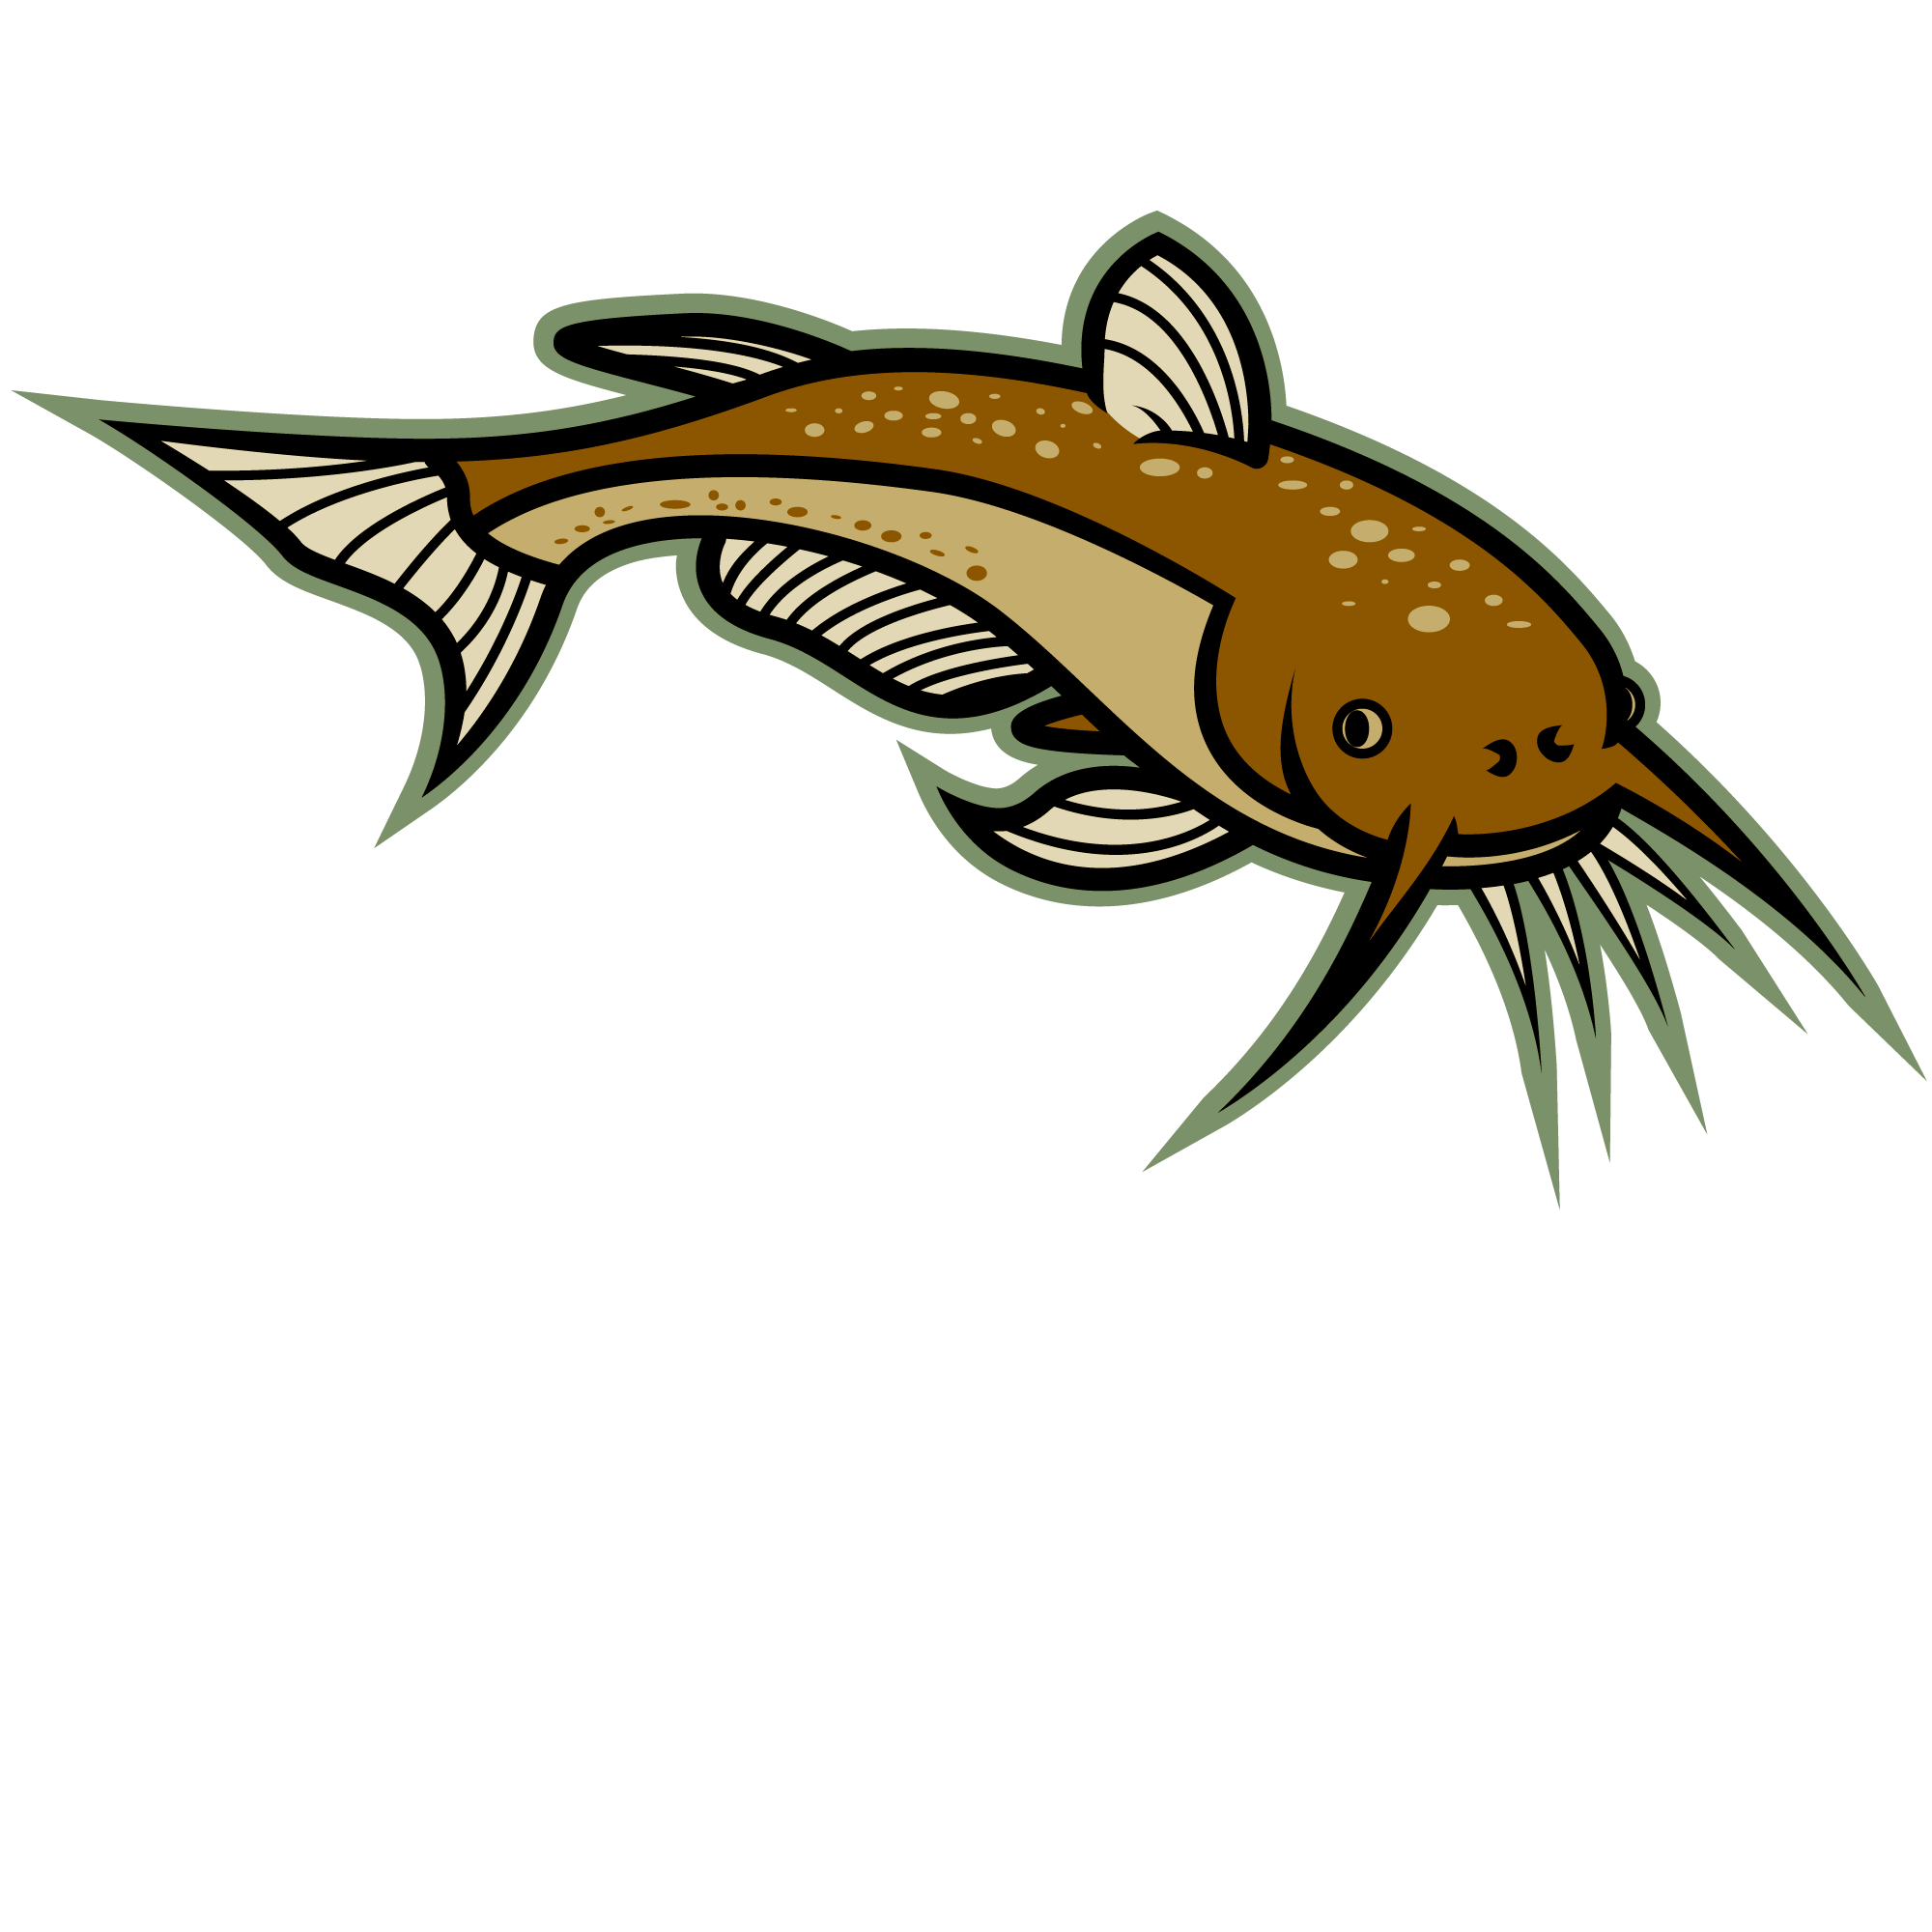 vector royalty free stock Catfish clipart. Best clip art clipartion.